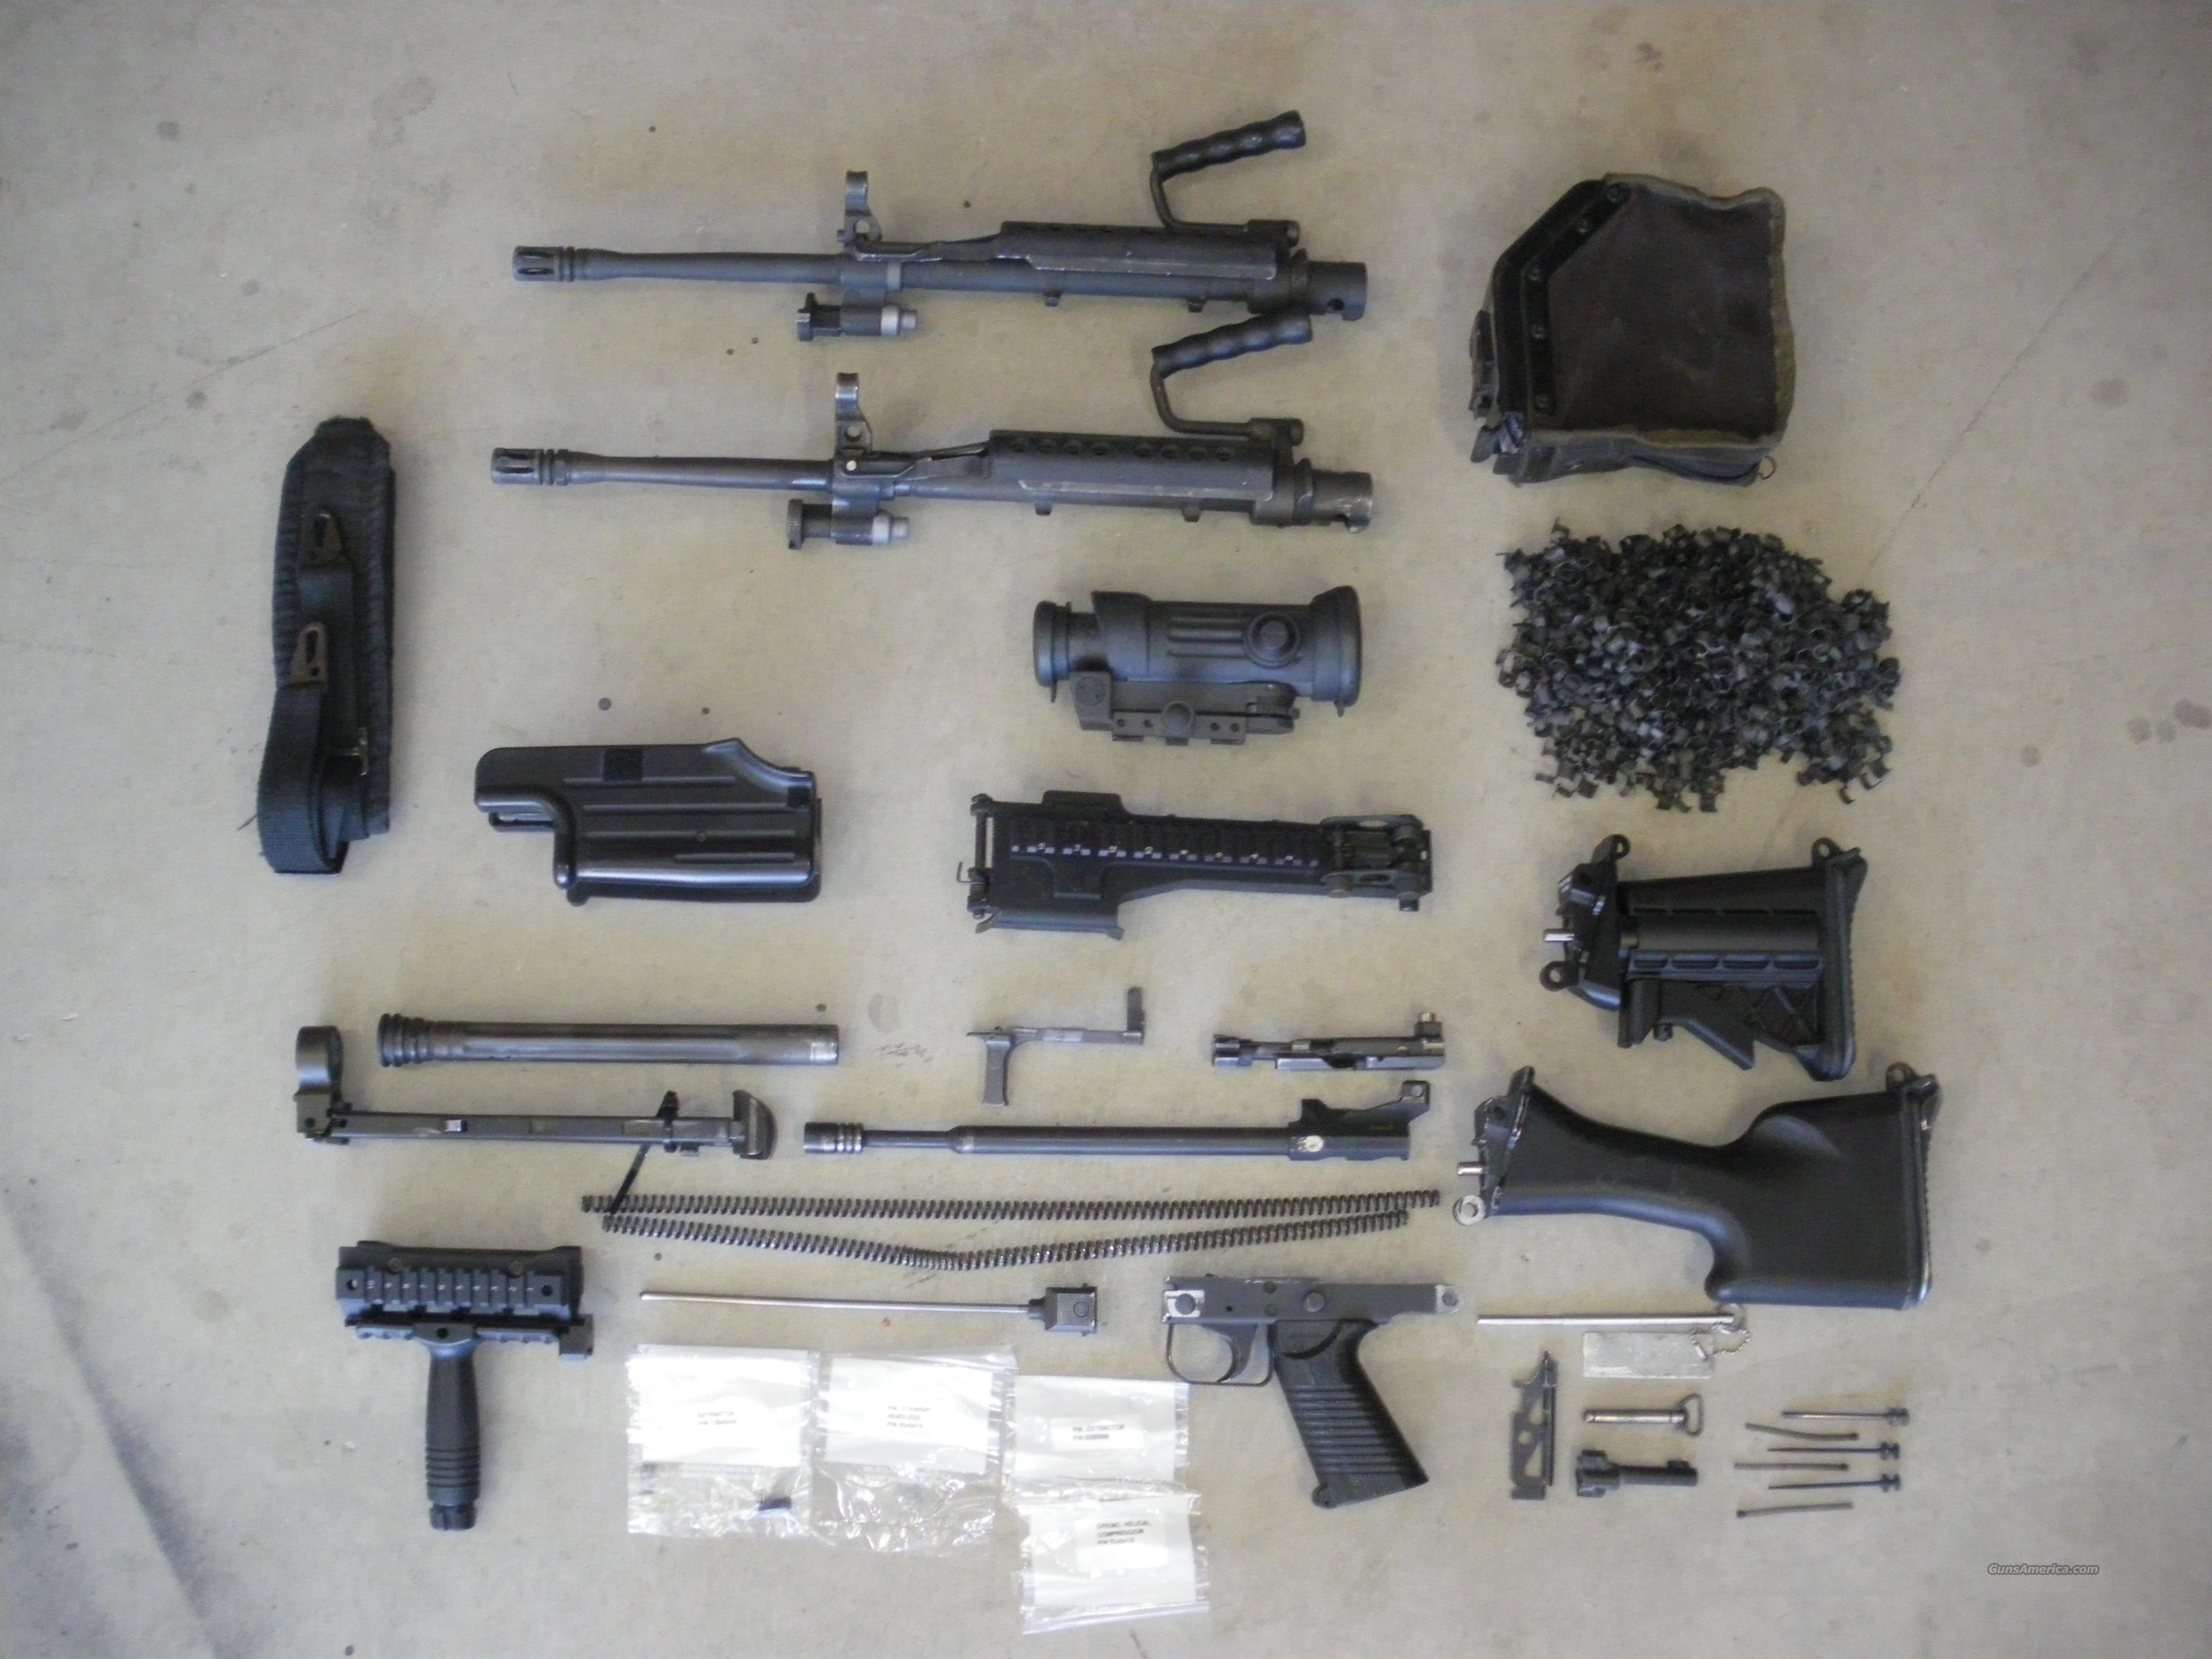 M249 SAW COMPLETE PARTS KIT W ACCESSORIES for sale